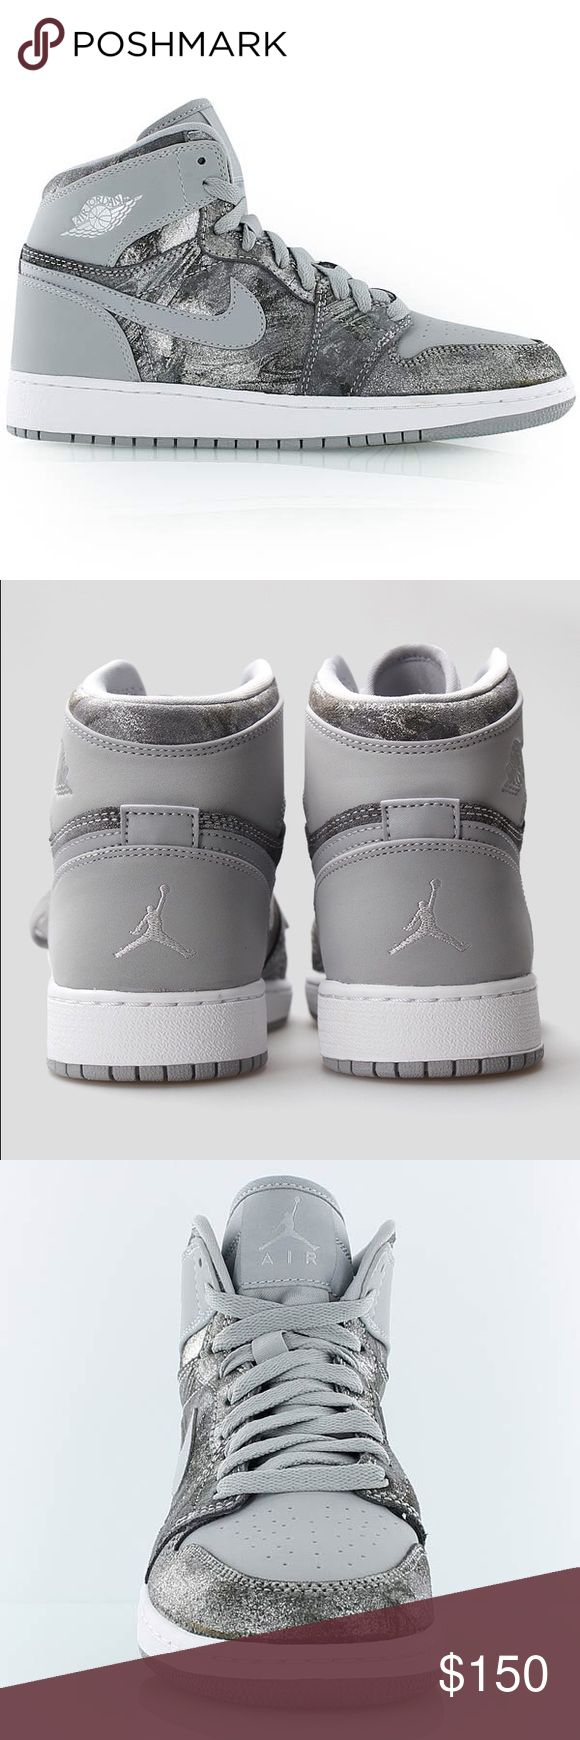 AIR JORDAN 1 RETRO HIGH WOLF GREY NIKE SHOES Brand new with box, box has no lid. Shoes are a size 6.5 Youth. Please look at sizing chart which is posted. Women's size 8 Jordan Shoes Sneakers